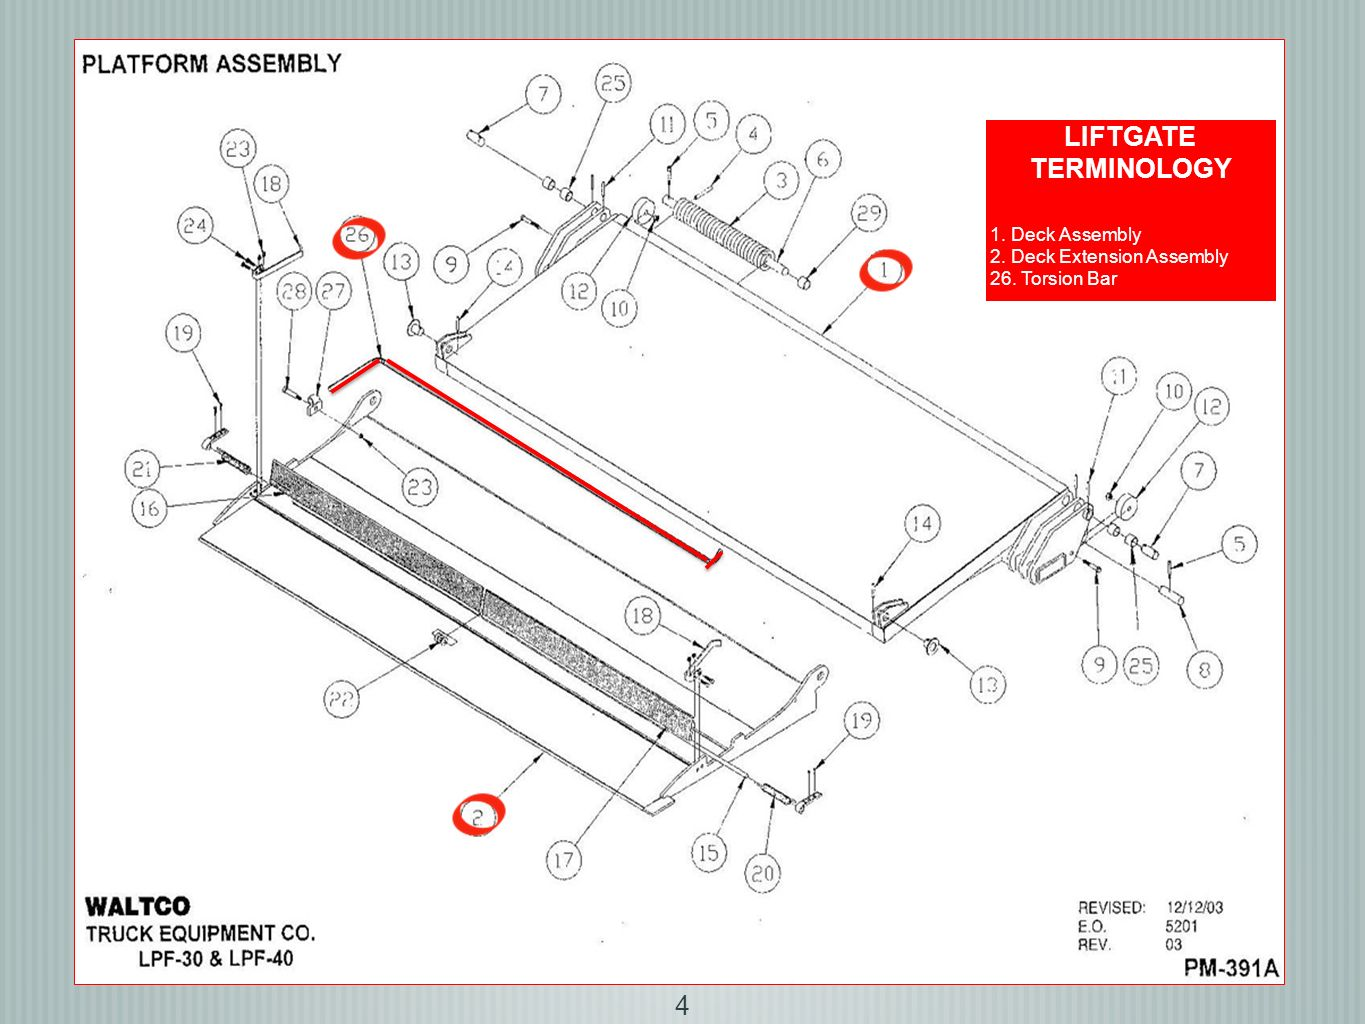 1 Trucker V Penske Waltco Civil Action No Ppt Download Wiring Diagram 4 Liftgate Terminology Deck Assembly 2 Extension 26 Torsion Bar